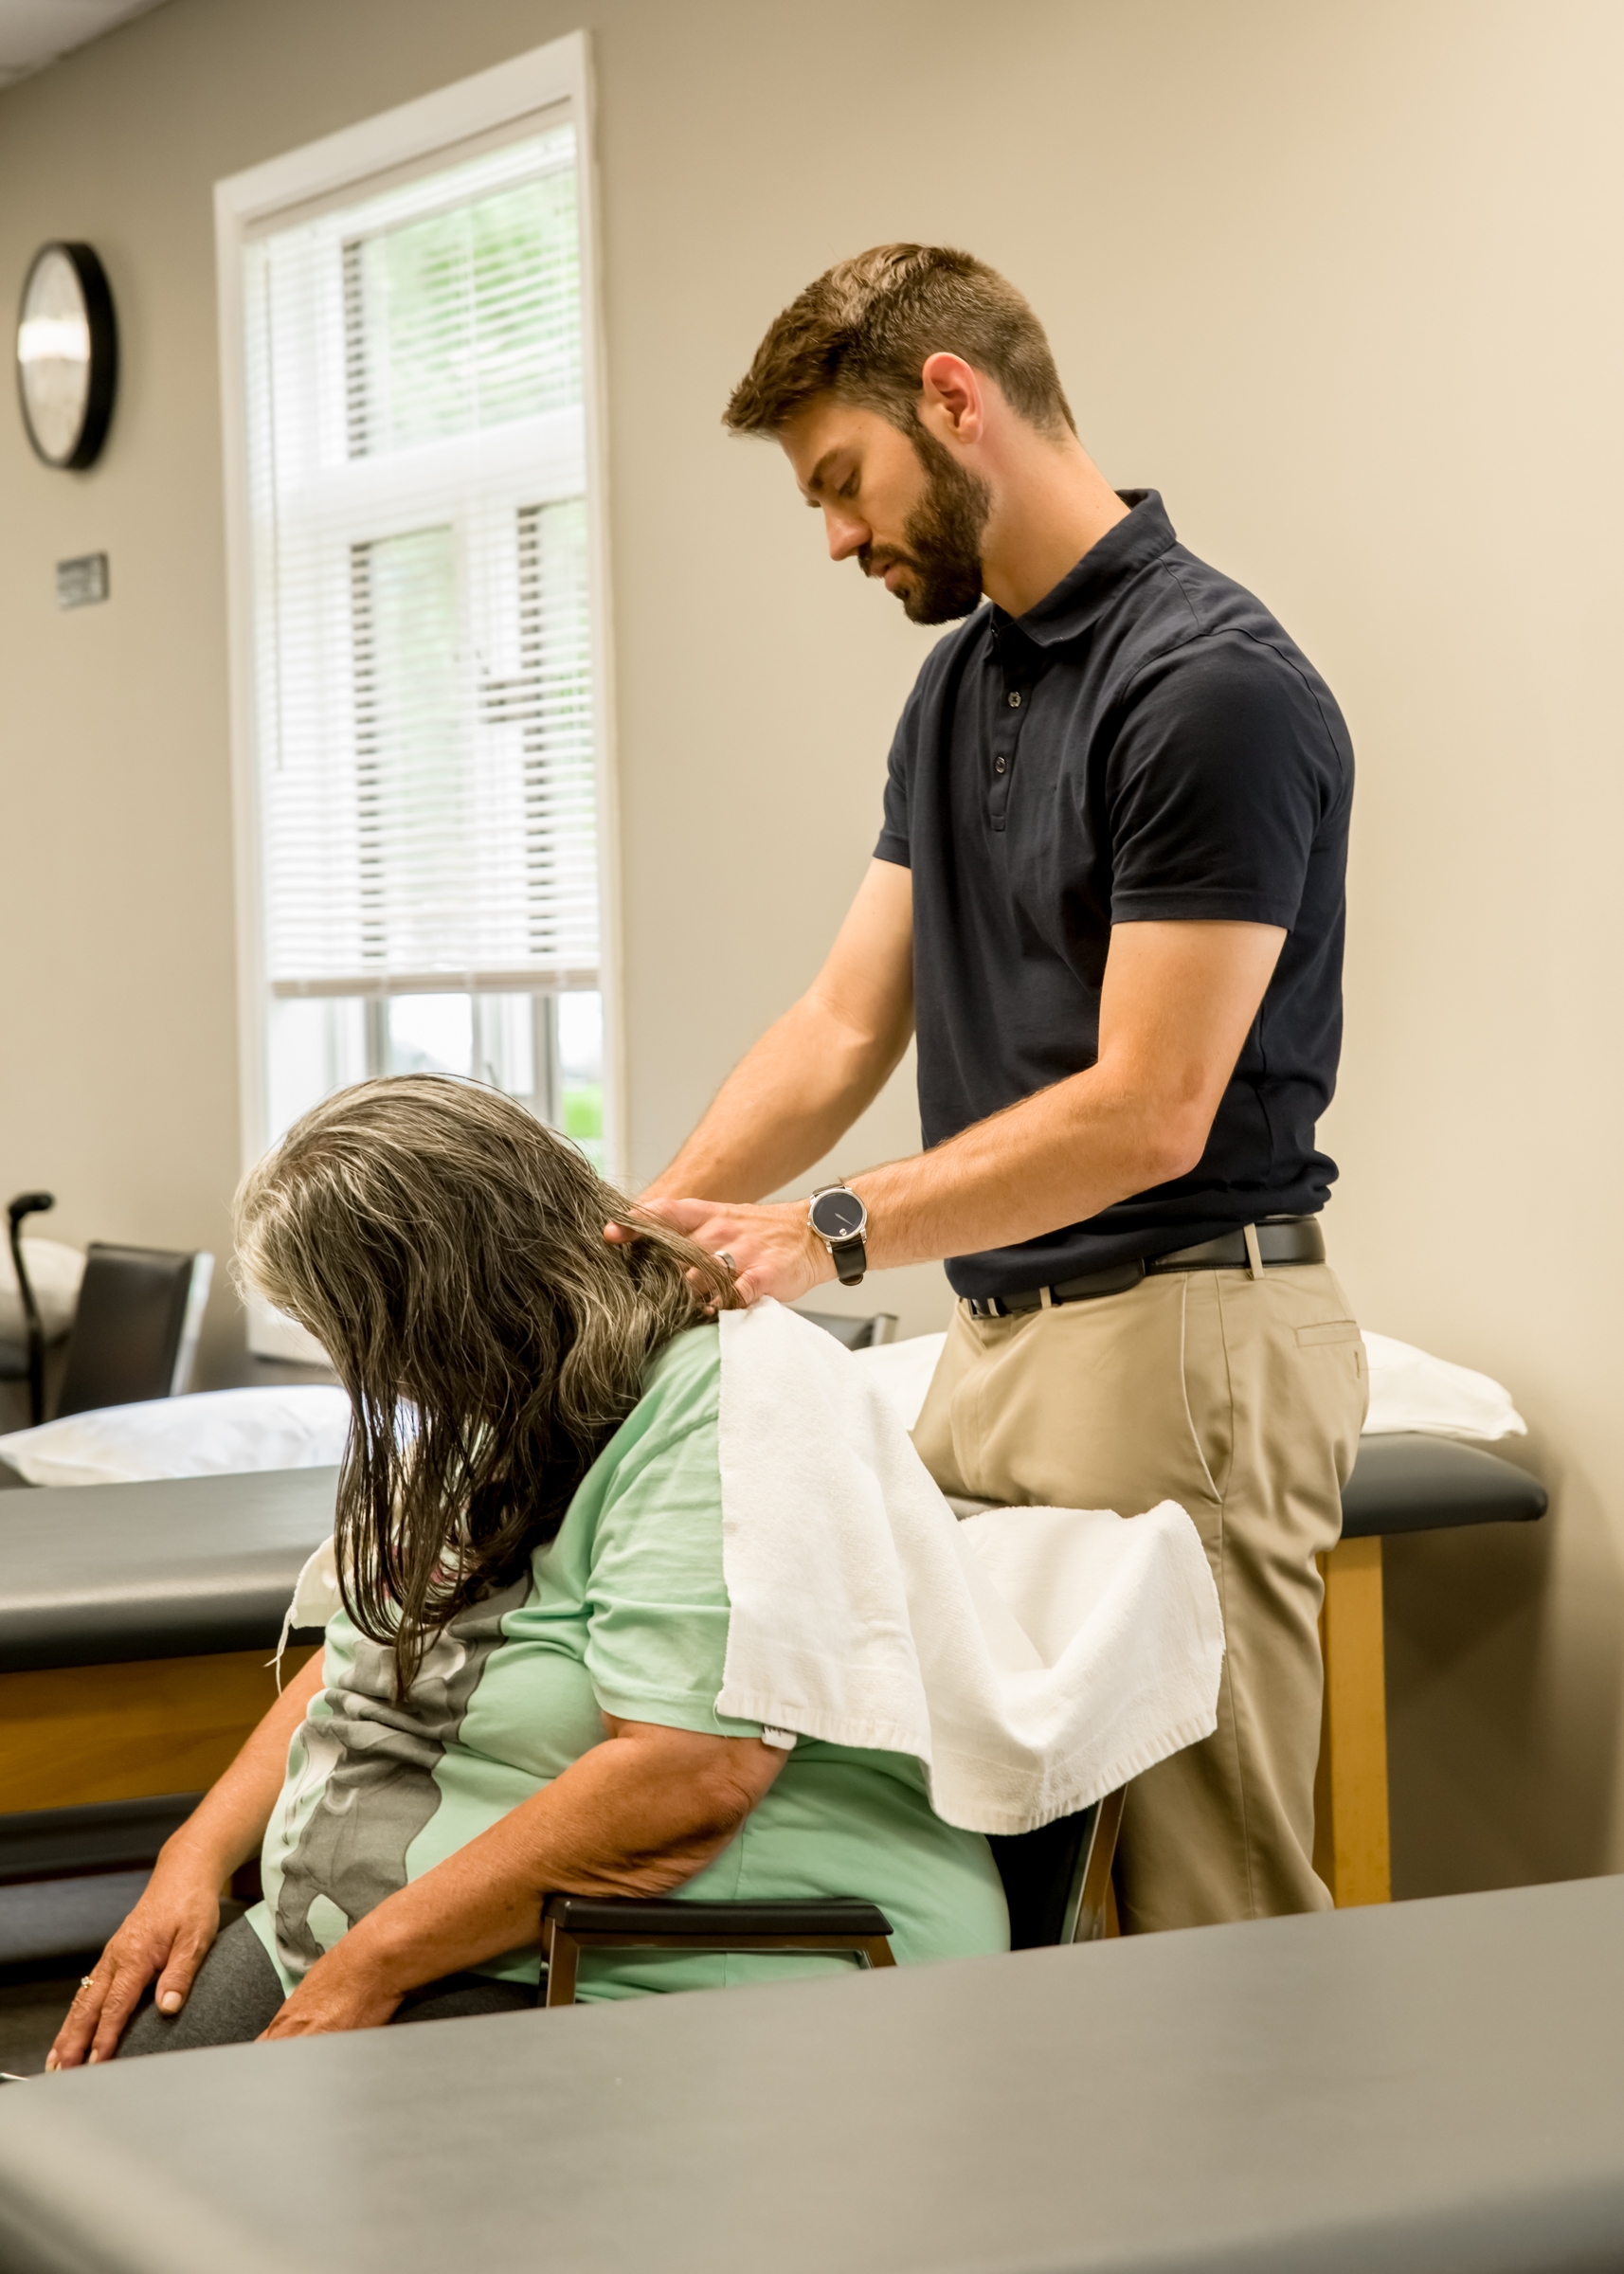 Prompt, exceptional care - Our therapists take the time to understand your specific needs through a 45 minute to 1 hour evaluation. We are well known for our compassion, friendly atmosphere, and outstanding patient care. At Lattimore, you are not just a number. We are dedicated to improving your quality of life.